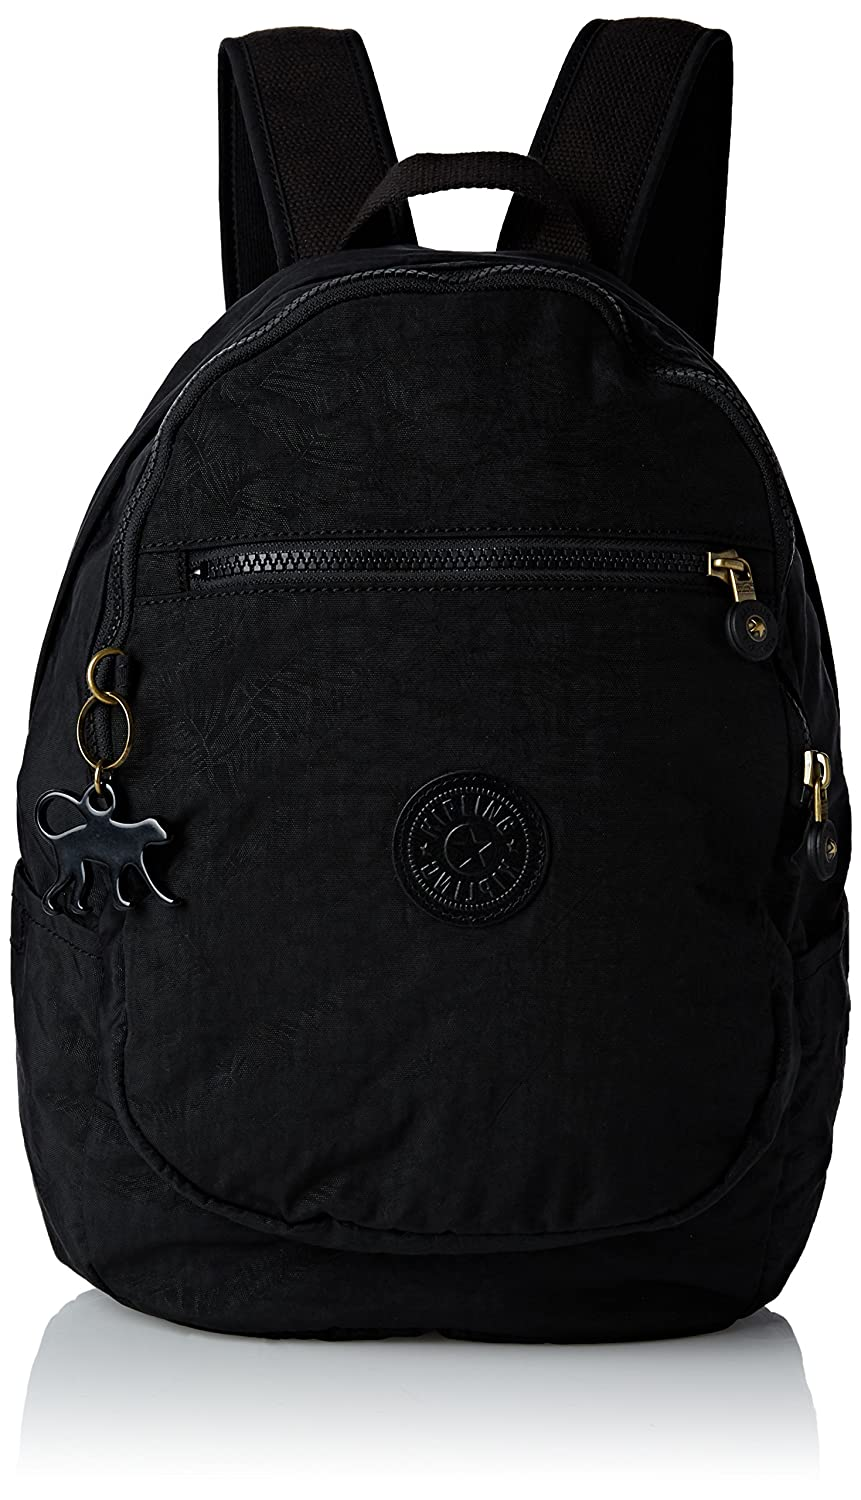 61215b6ebf Kipling Womens Clas Challenger Bp Backpack Handbag Black Leaf:  Amazon.co.uk: Shoes & Bags